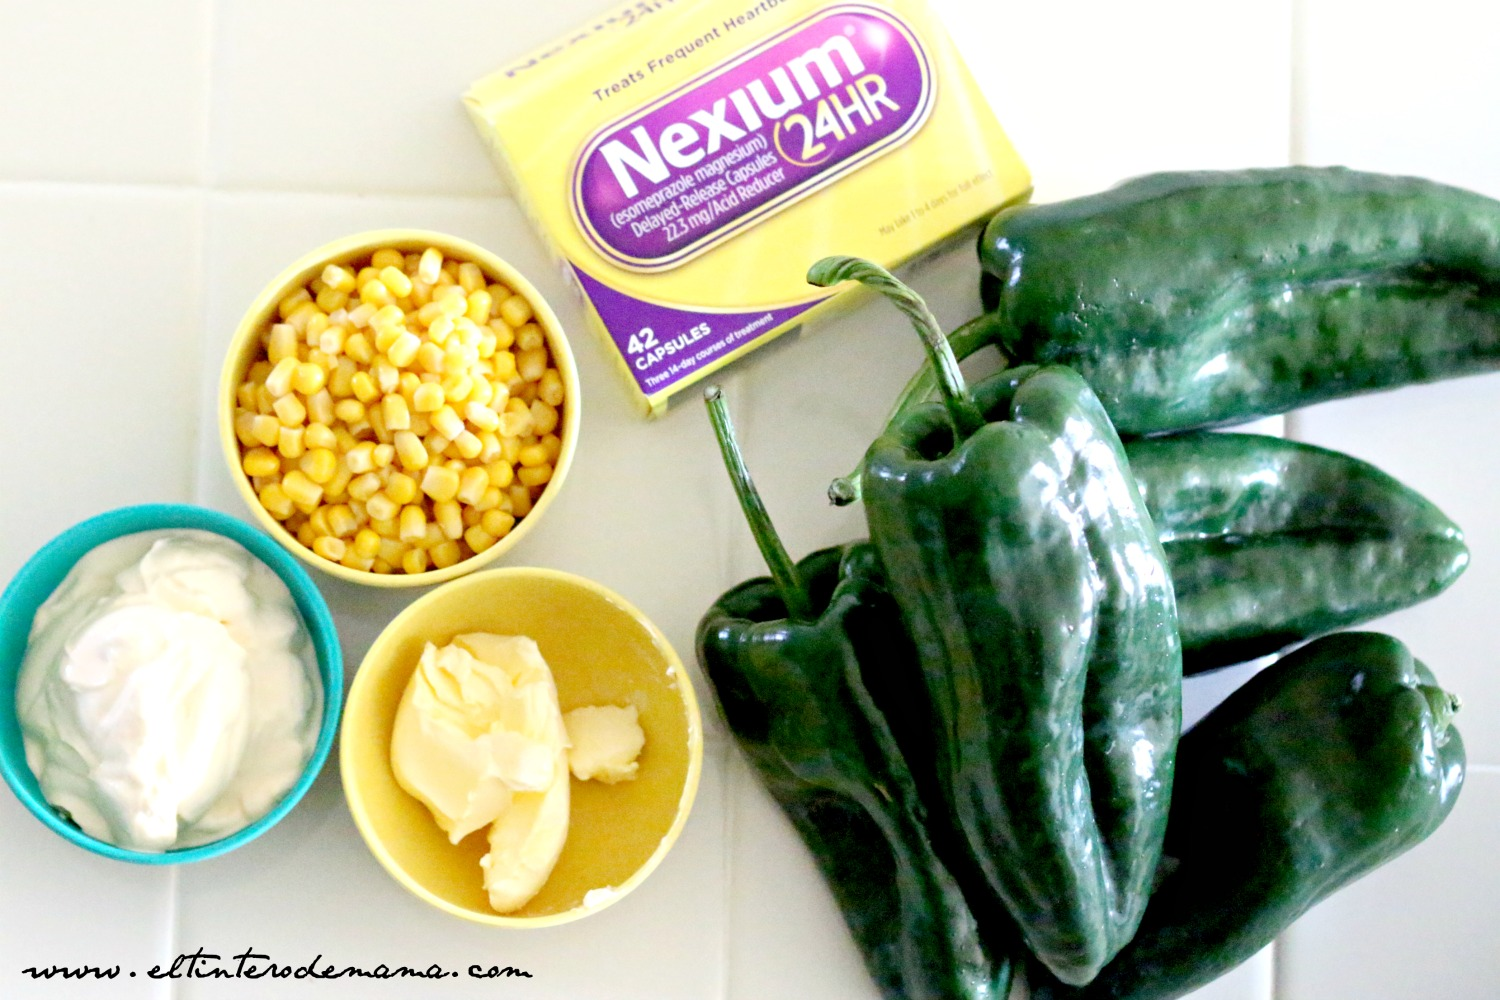 Nexium-Holiday-Recipes-Walgreens